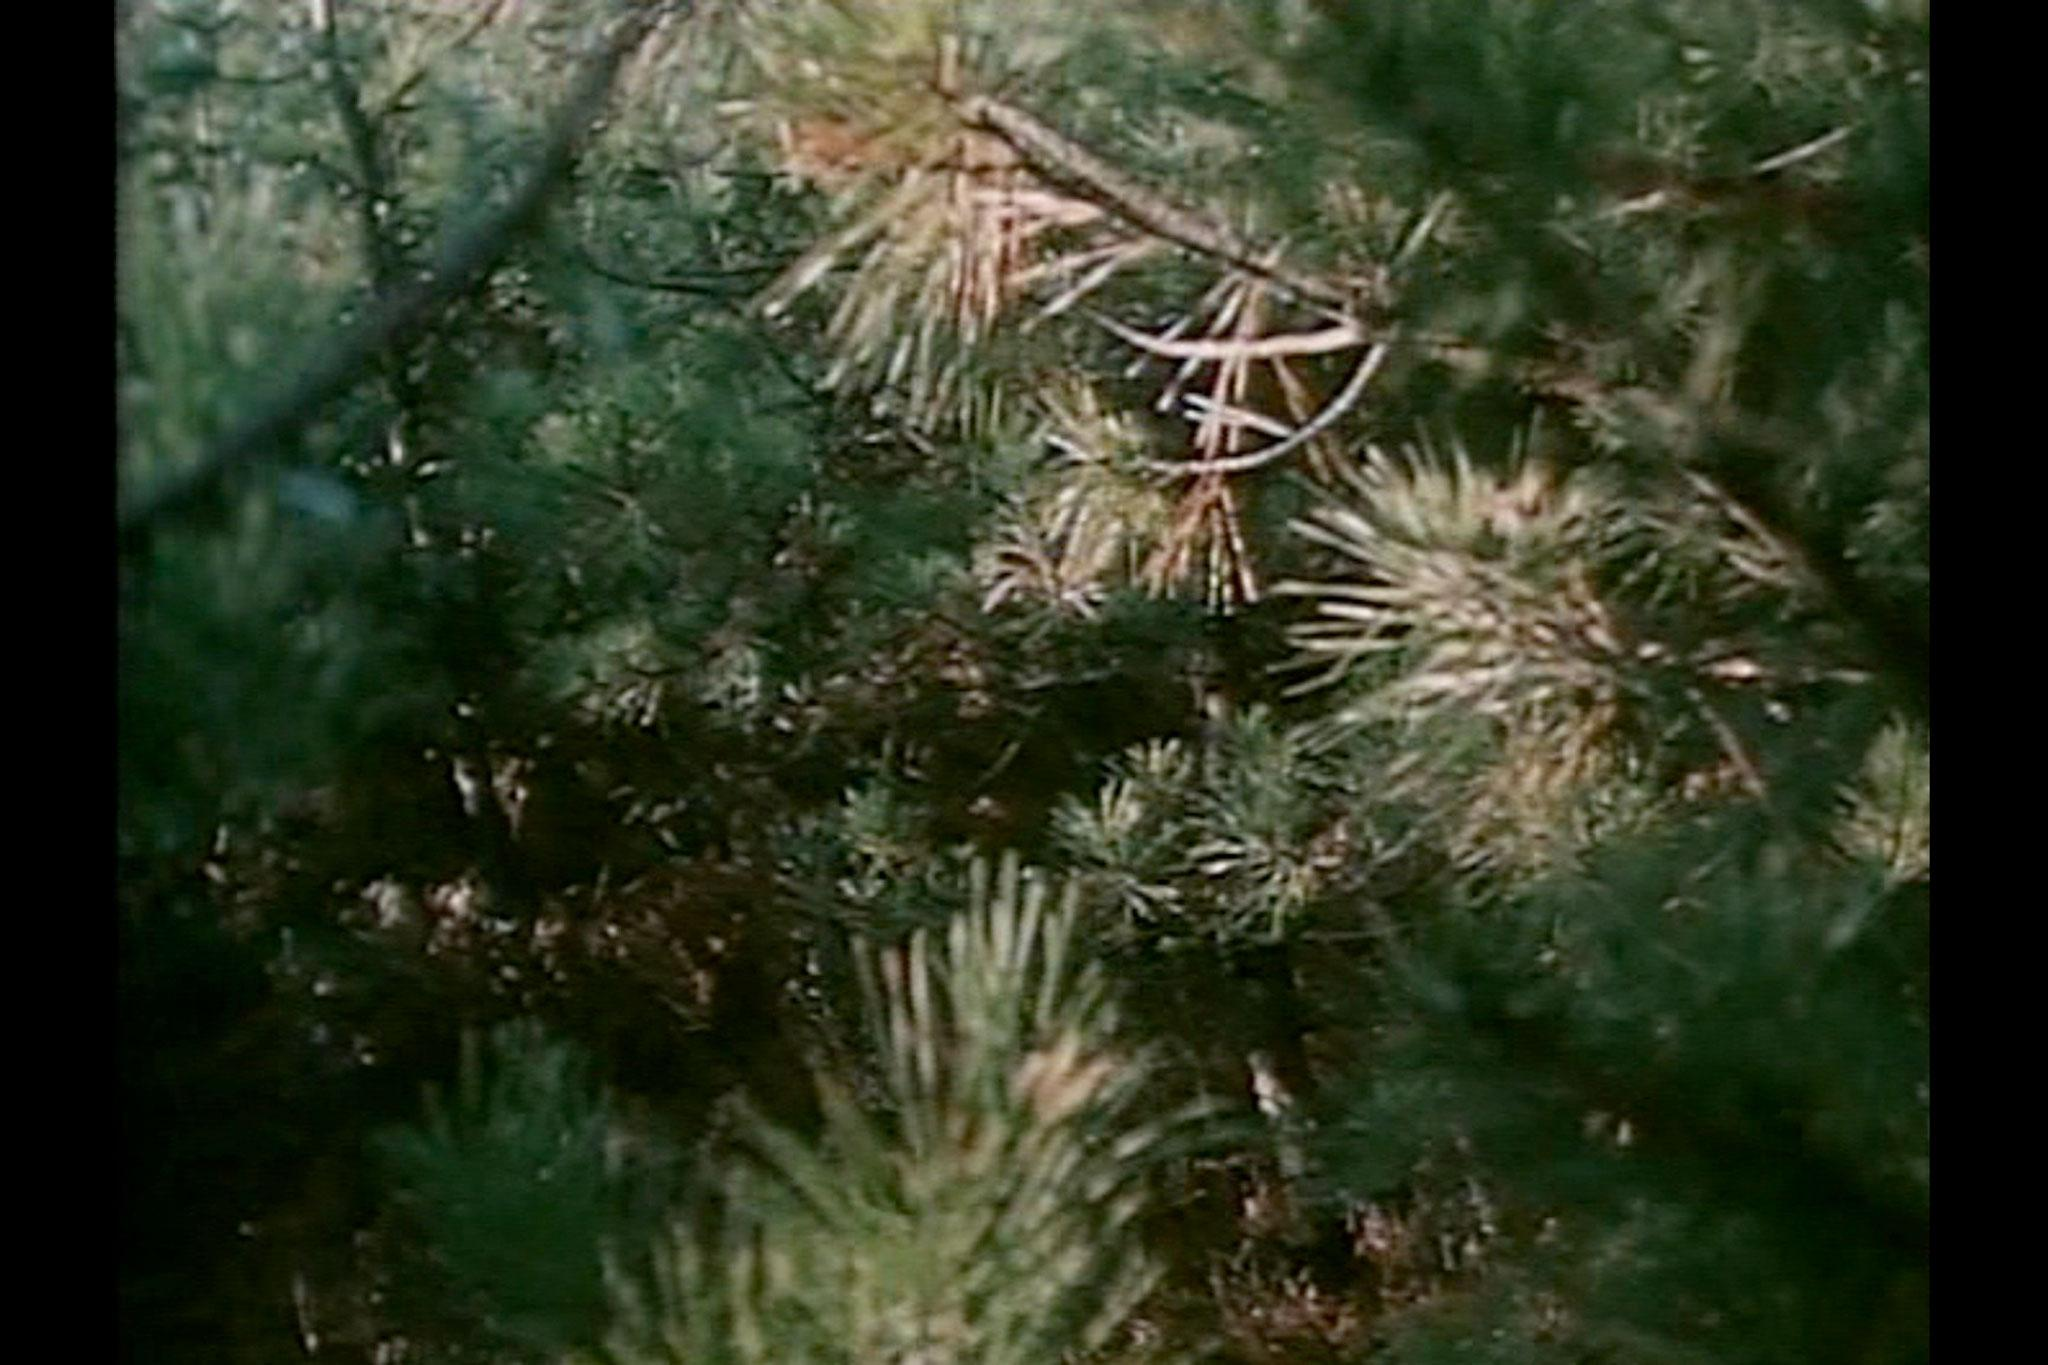 a close up of sunlit pine needles